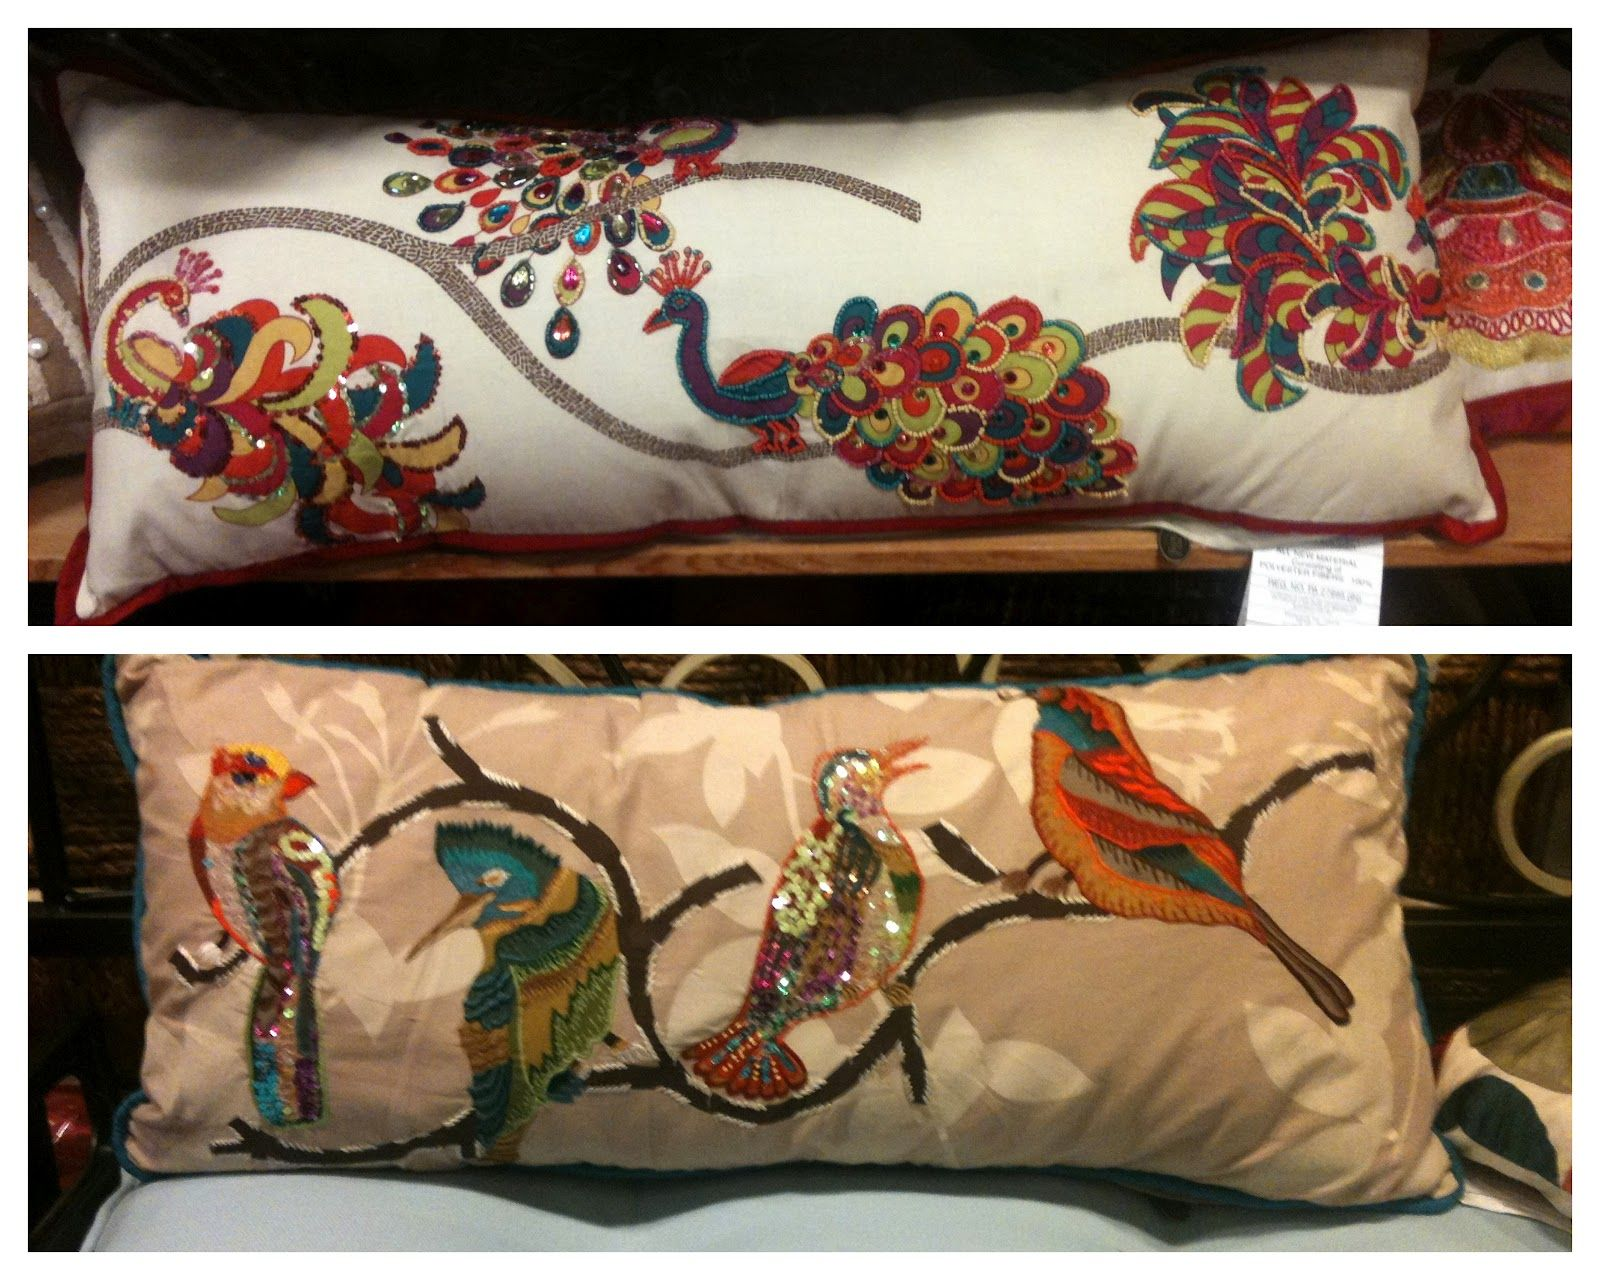 Pier 199 Peacocks and Beaded Birds Pillows | Pier 199 a store without ...